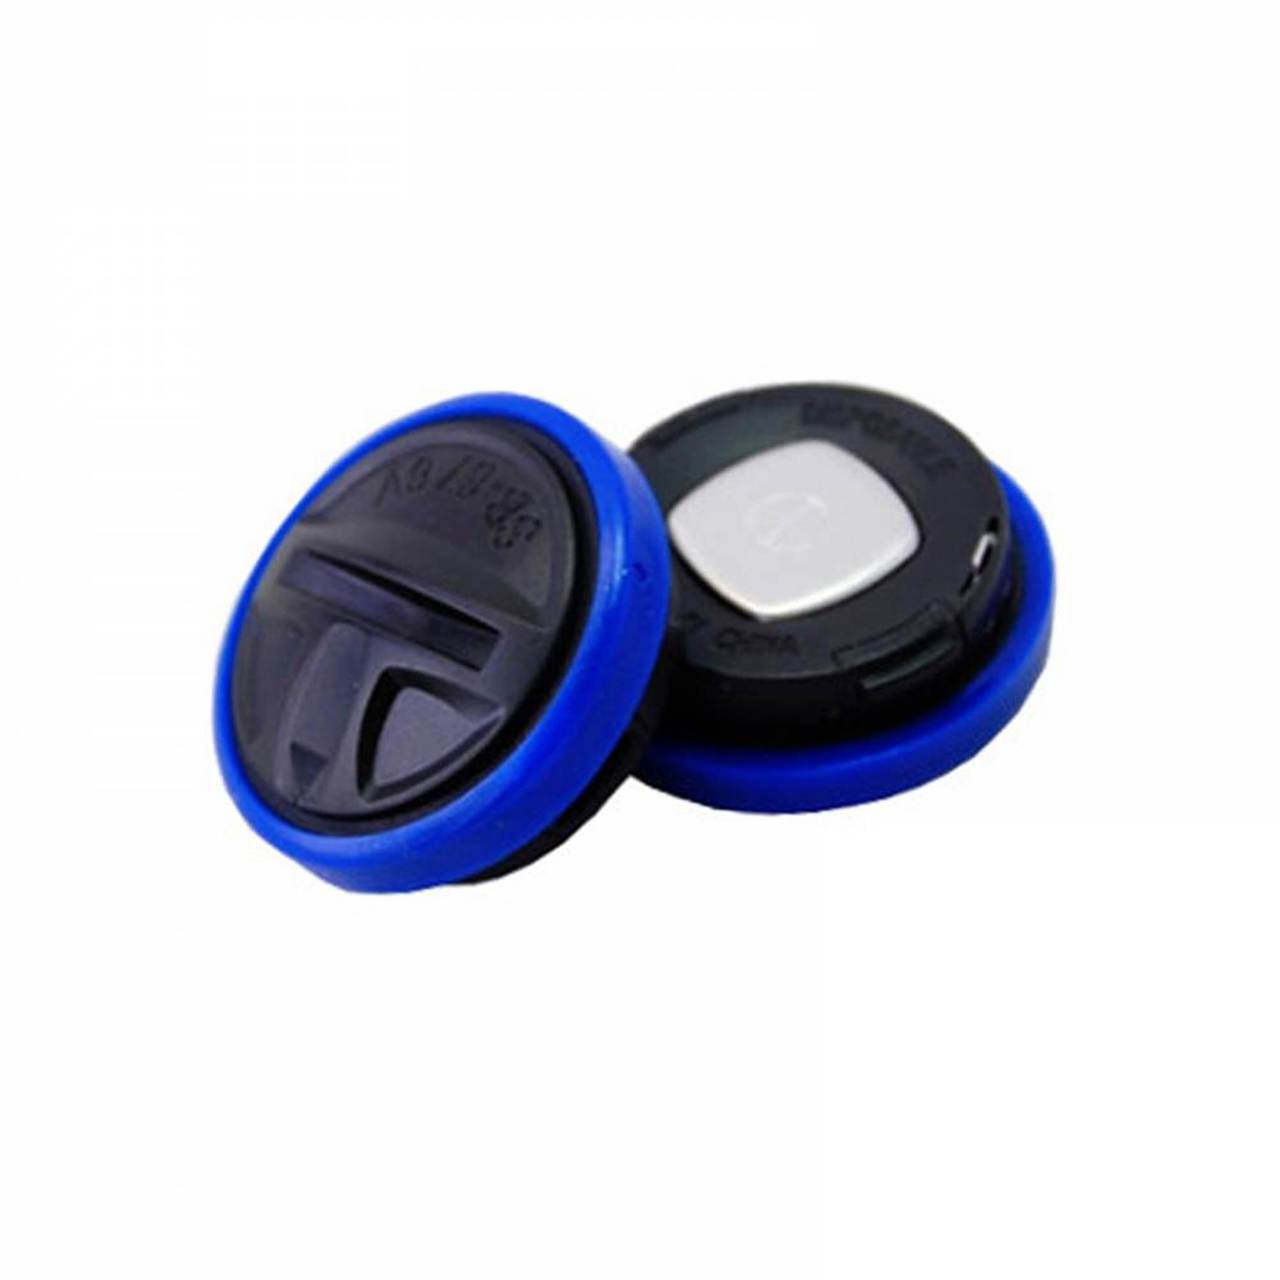 Pet Safe Pet Collar 6V Lithium Battery 67 - 2 Pack On Retail Card + Free Shipping